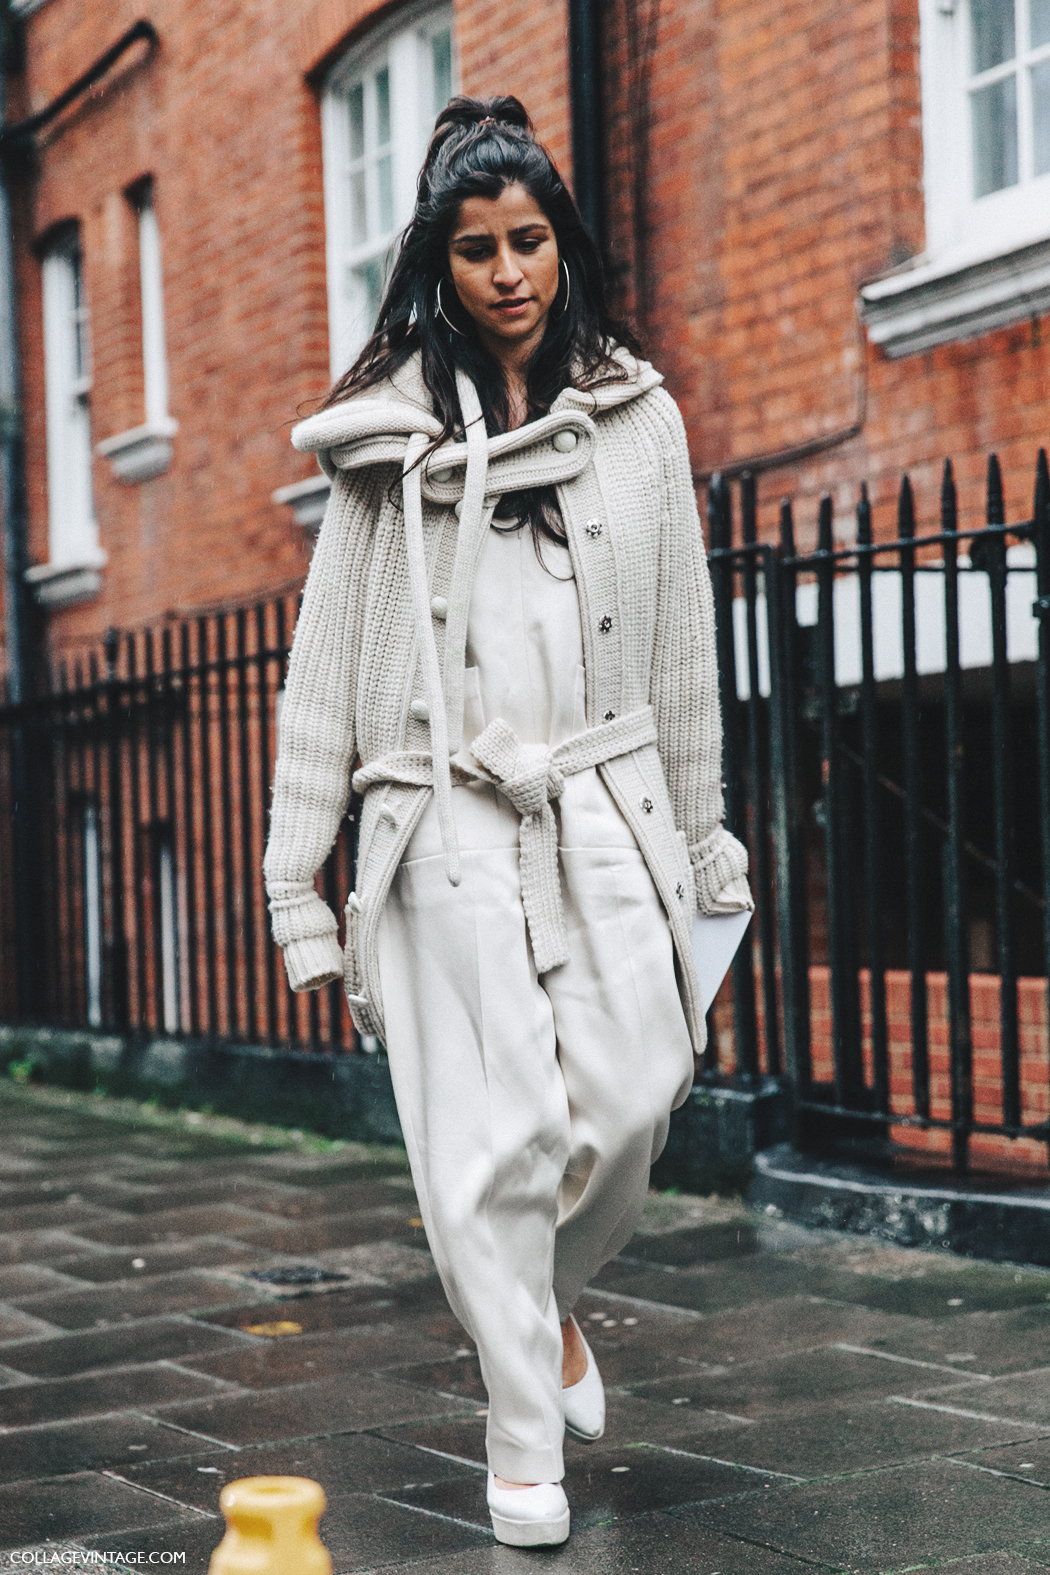 LFW-London_Fashion_Week_Fall_16-Street_Style-Collage_Vintage-Nude_Outfit-Big_Hoops-Knit-Jumpsuit-1